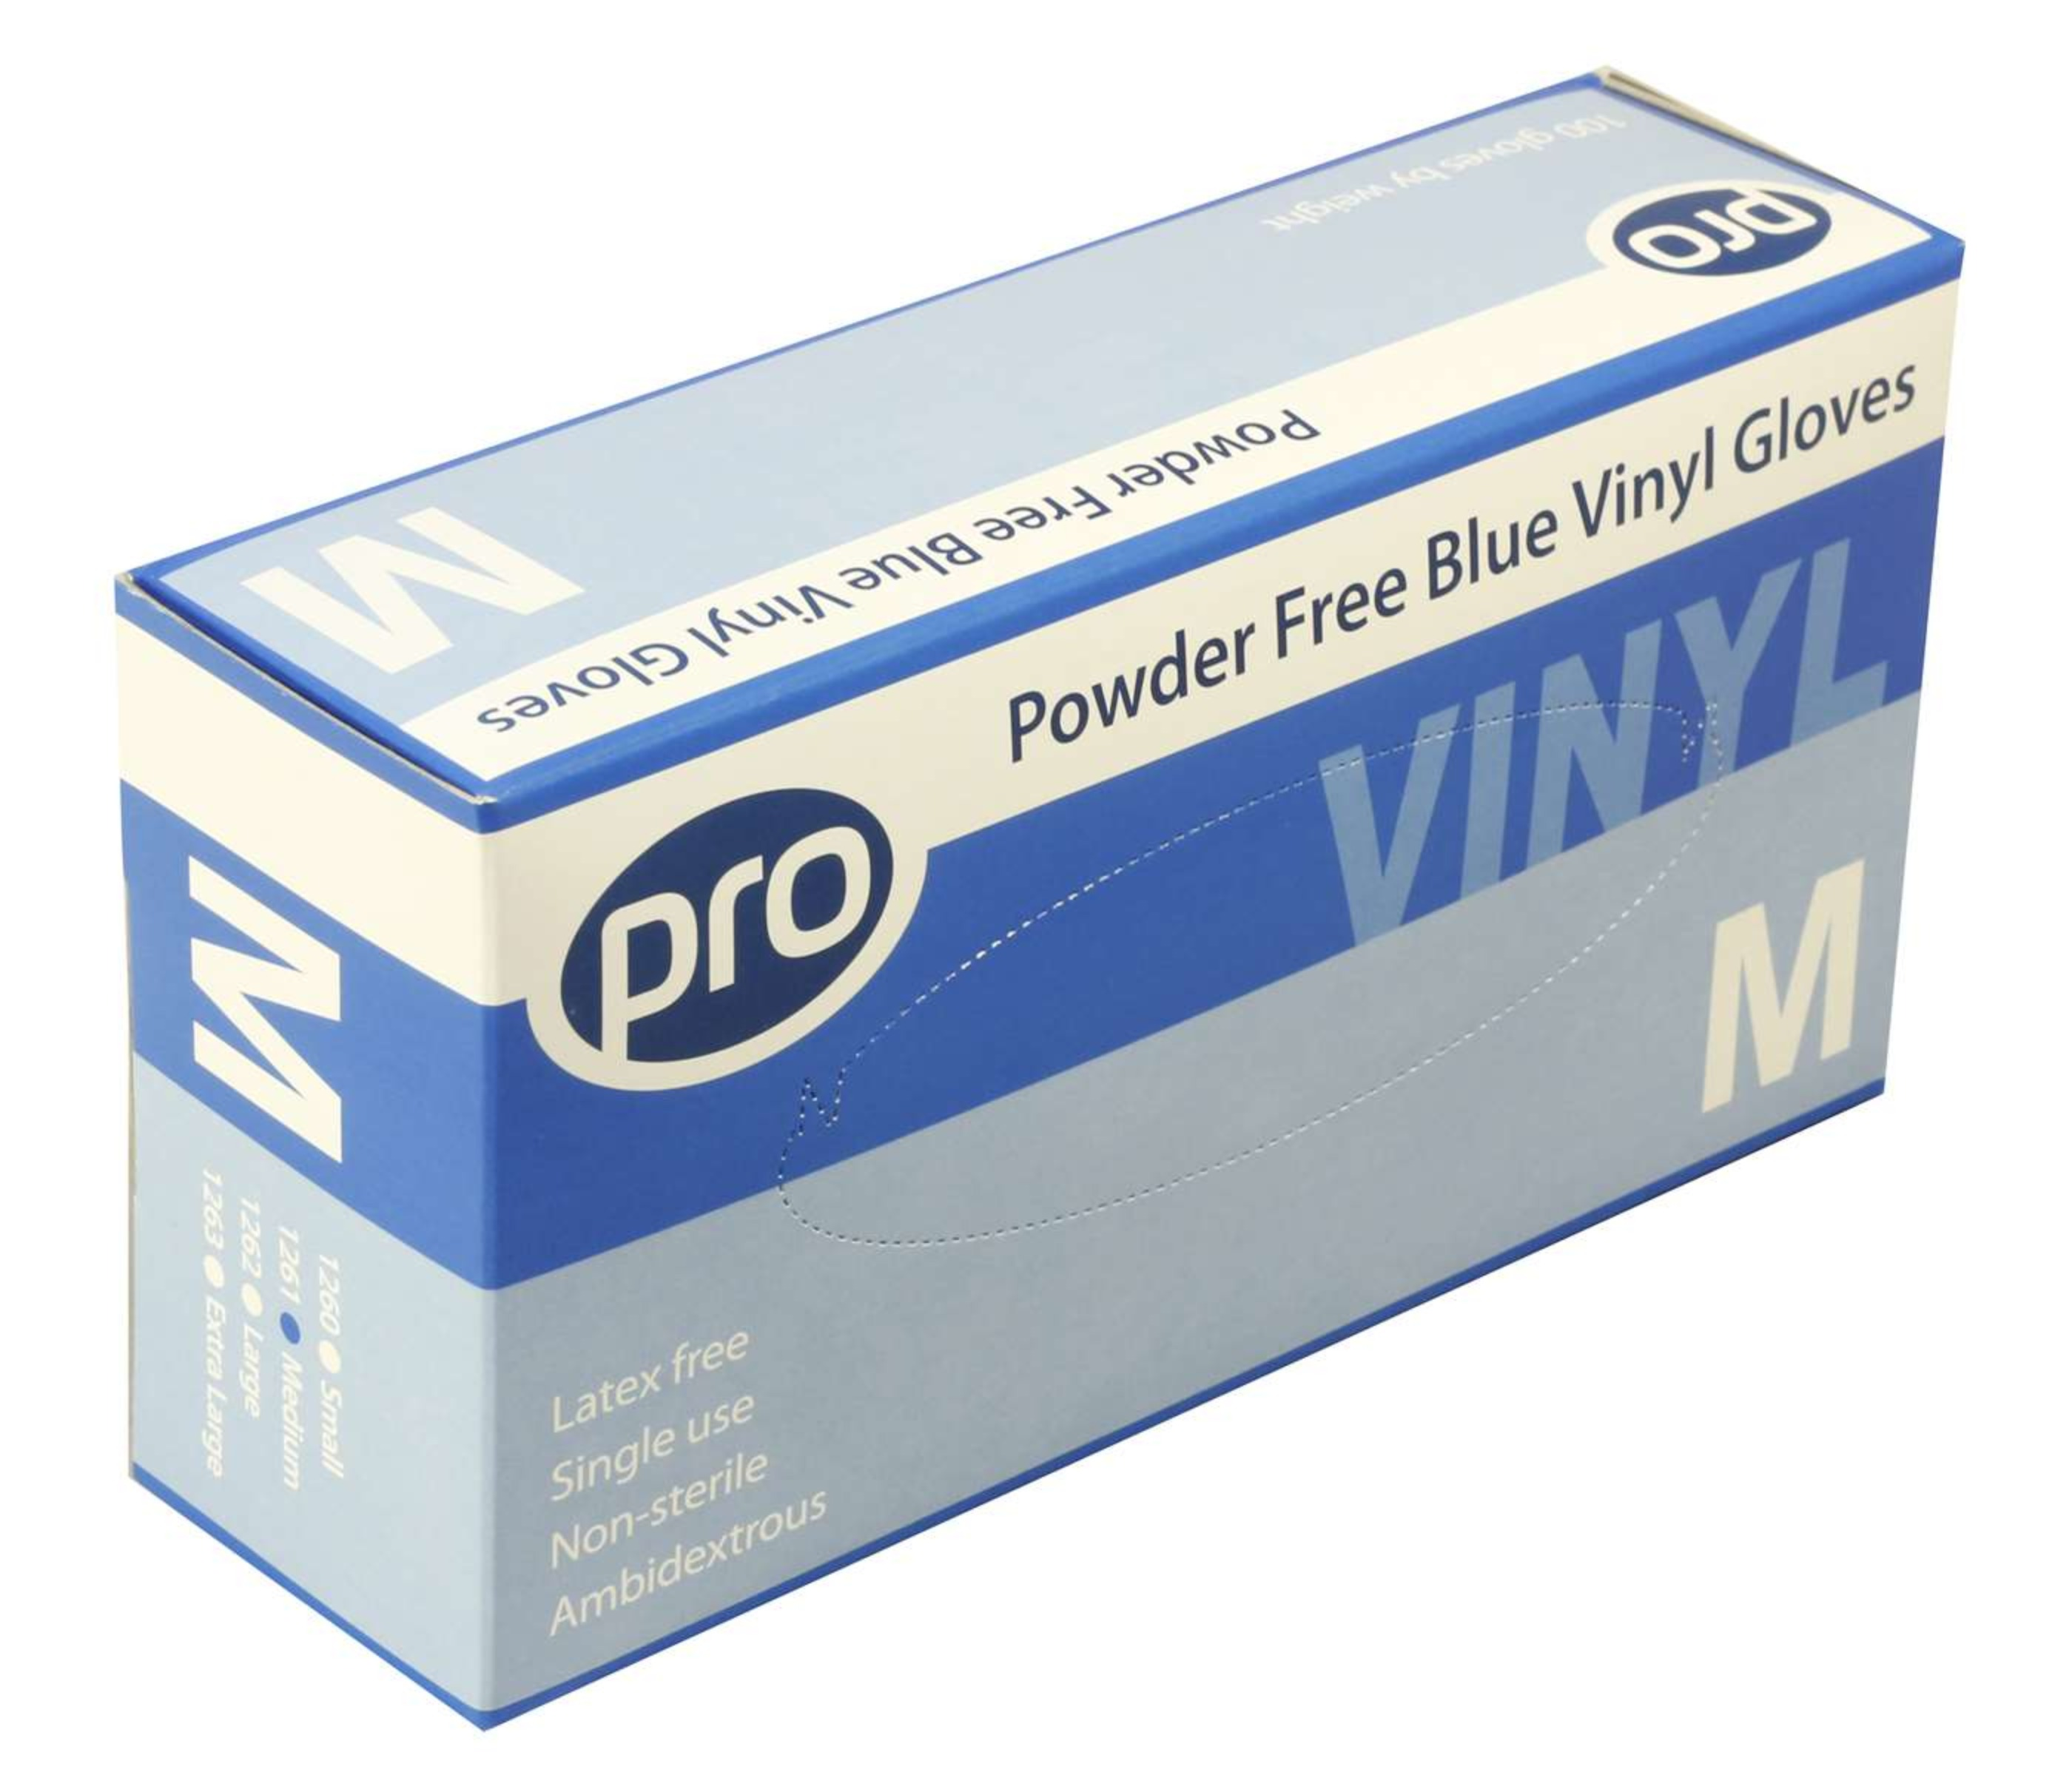 Blue Vinyl Gloves Powder Free - Medium 1x100